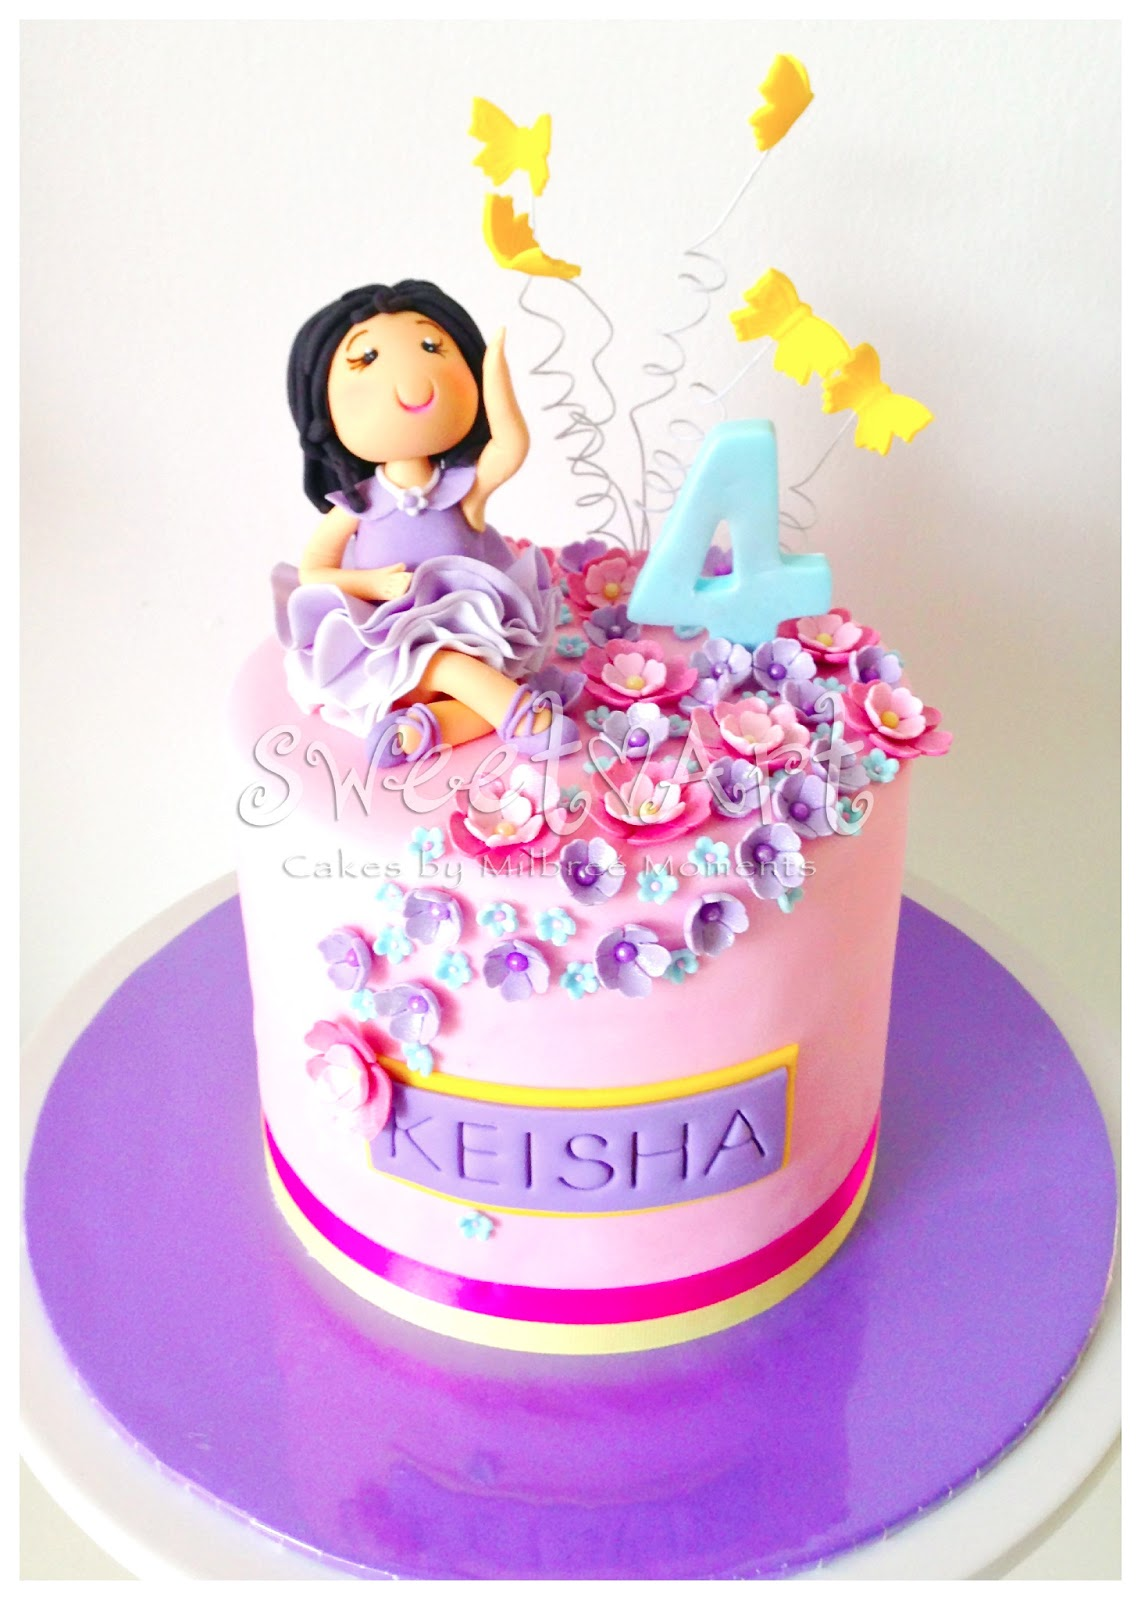 Sweet Art Cakes By Milbre 233 Moments Keisha S Ballerina 4th